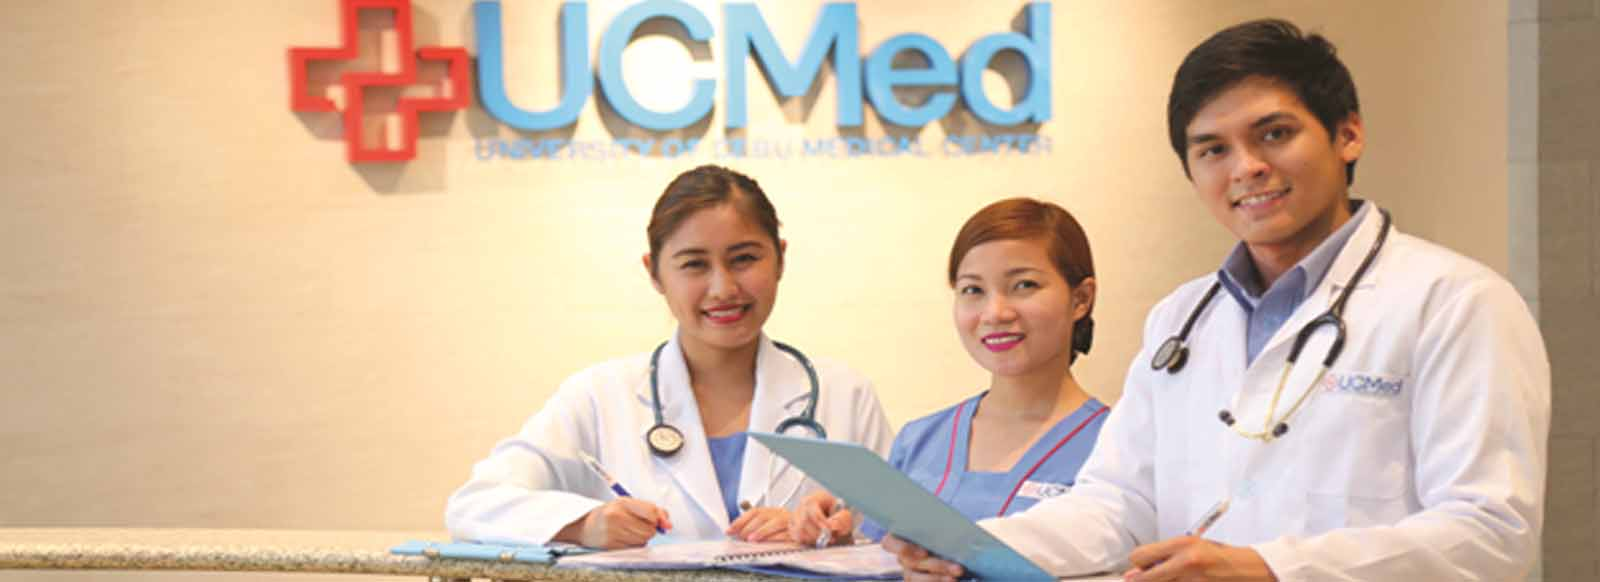 UCMed Staff – Welcome Cover